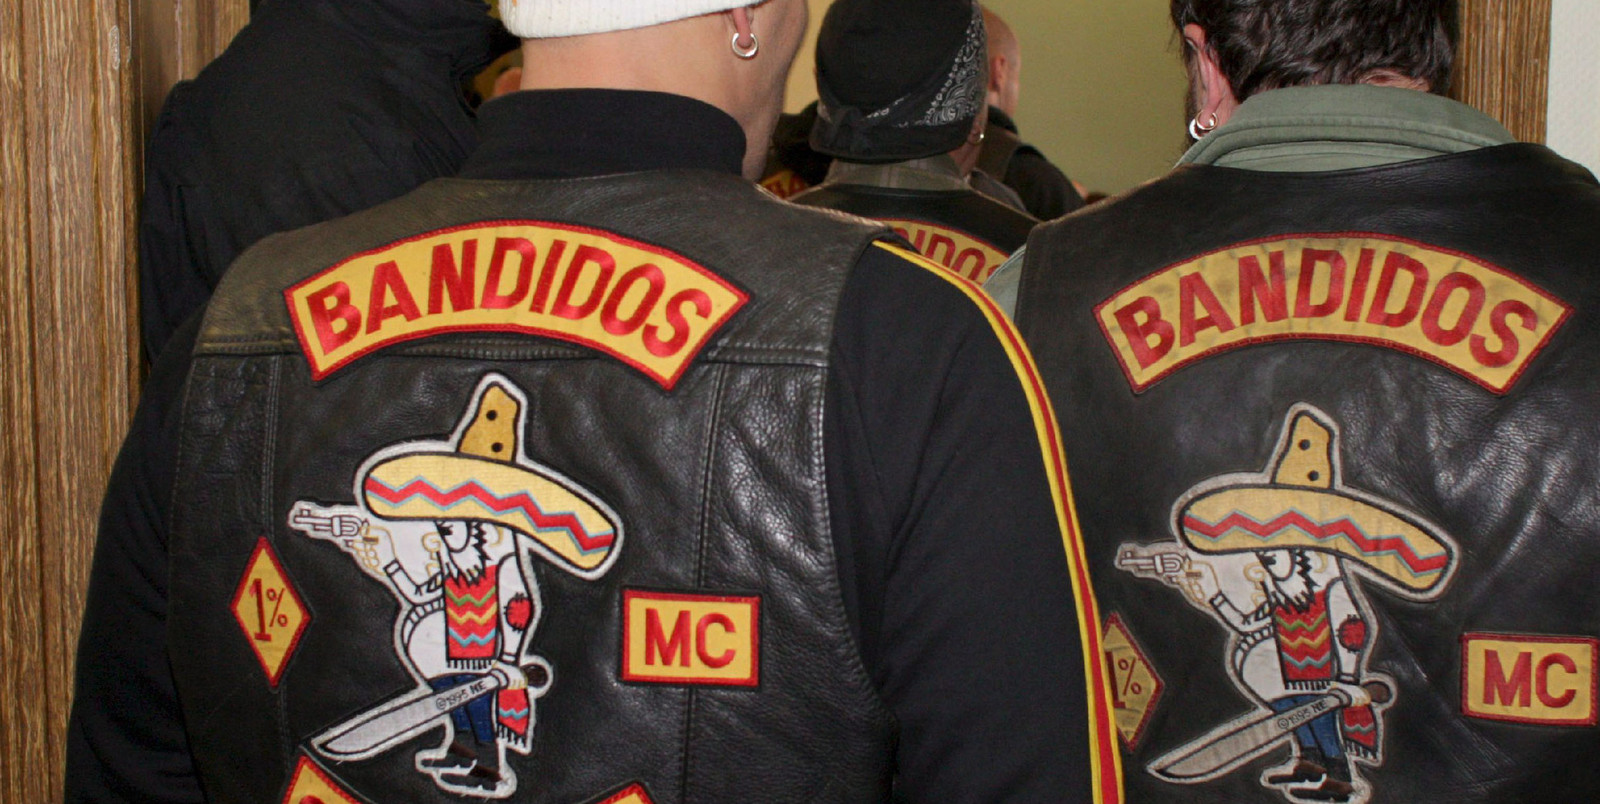 bandidos trial wayne kellestine (redirected from wayne kellestine) the day after the bodies were discovered, five people, including one member of the bandidos motorcycle gang.